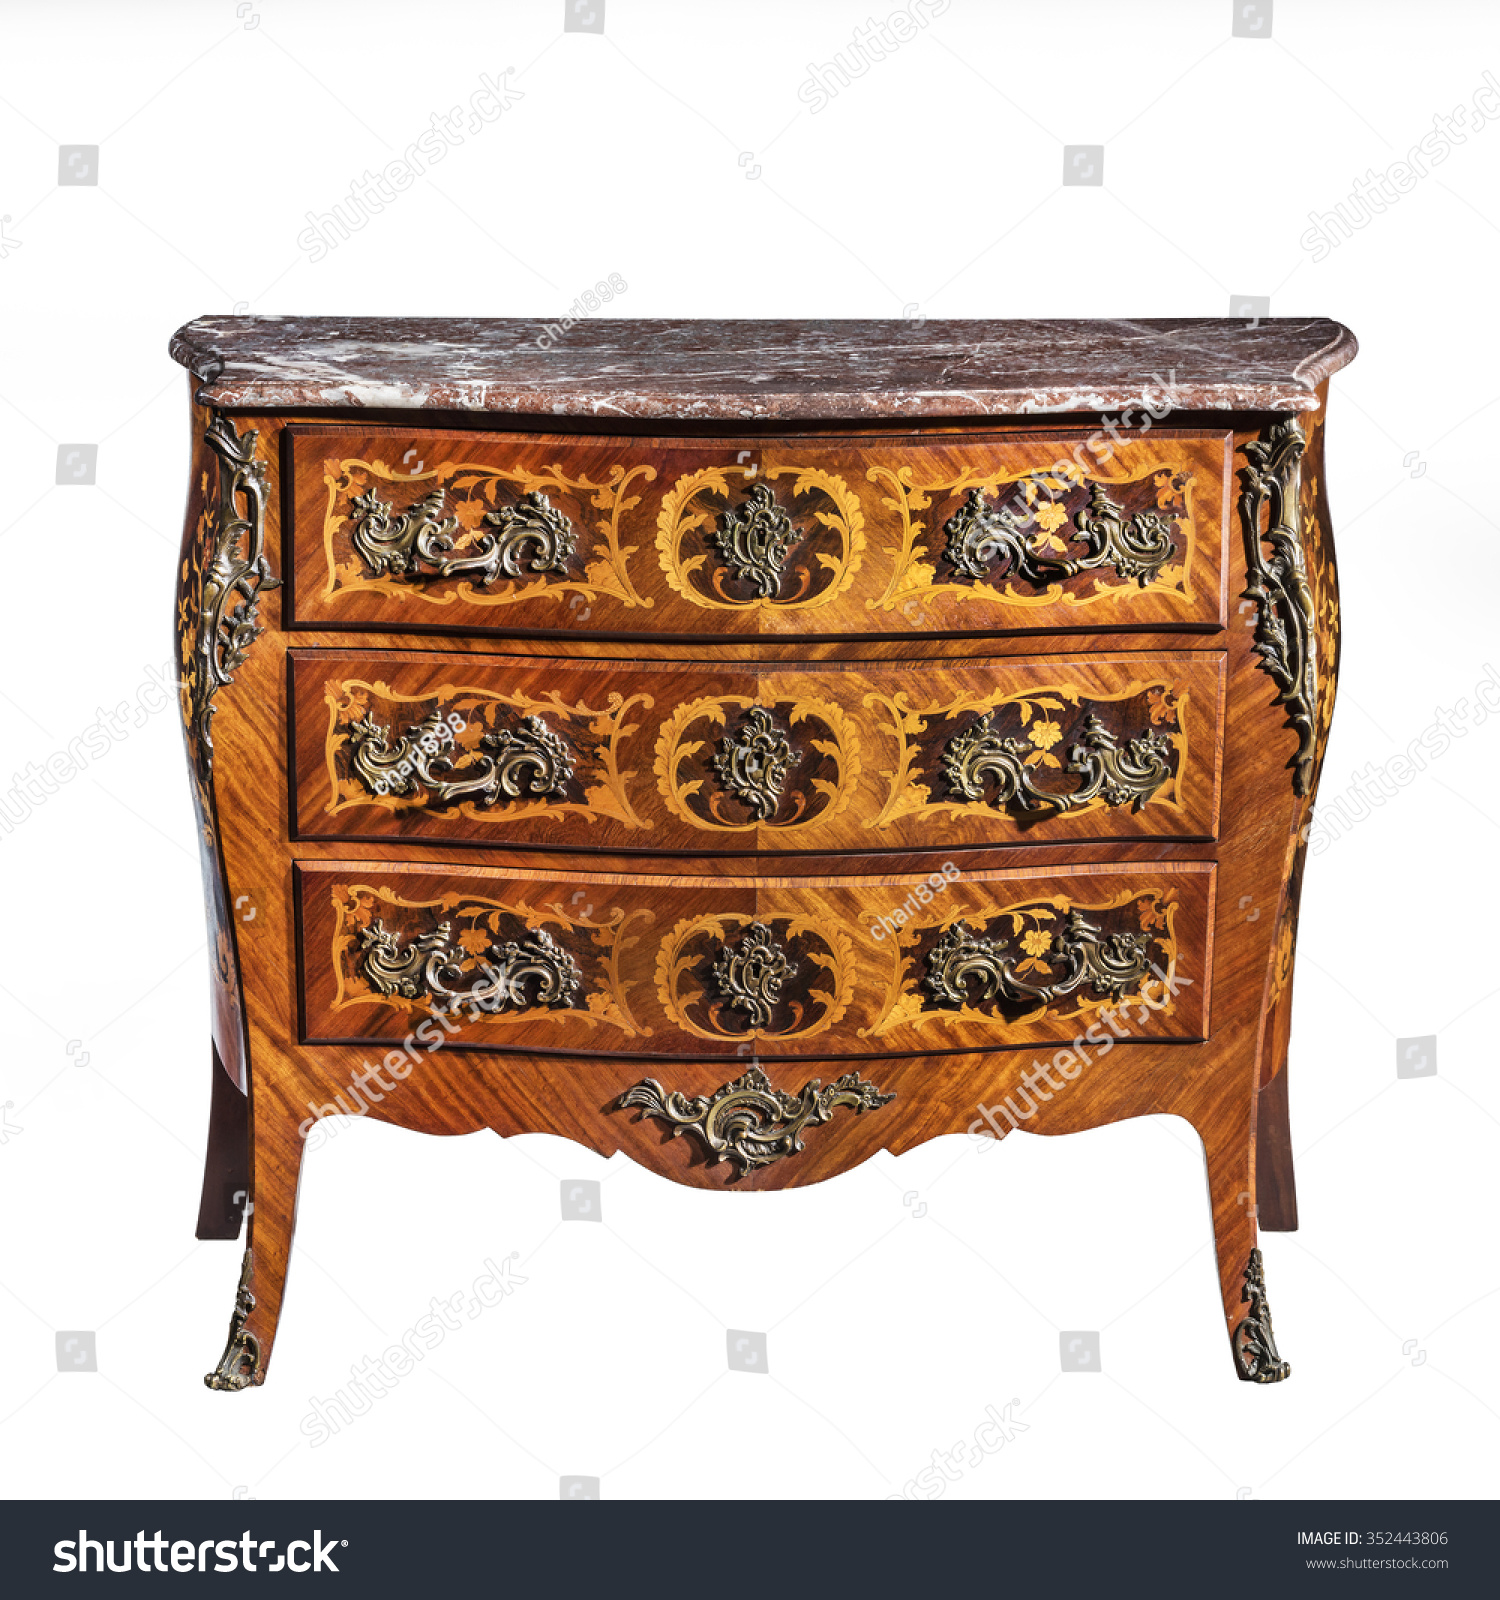 Old Vintage Antique Chest Of Drawers Known As Commode Wood